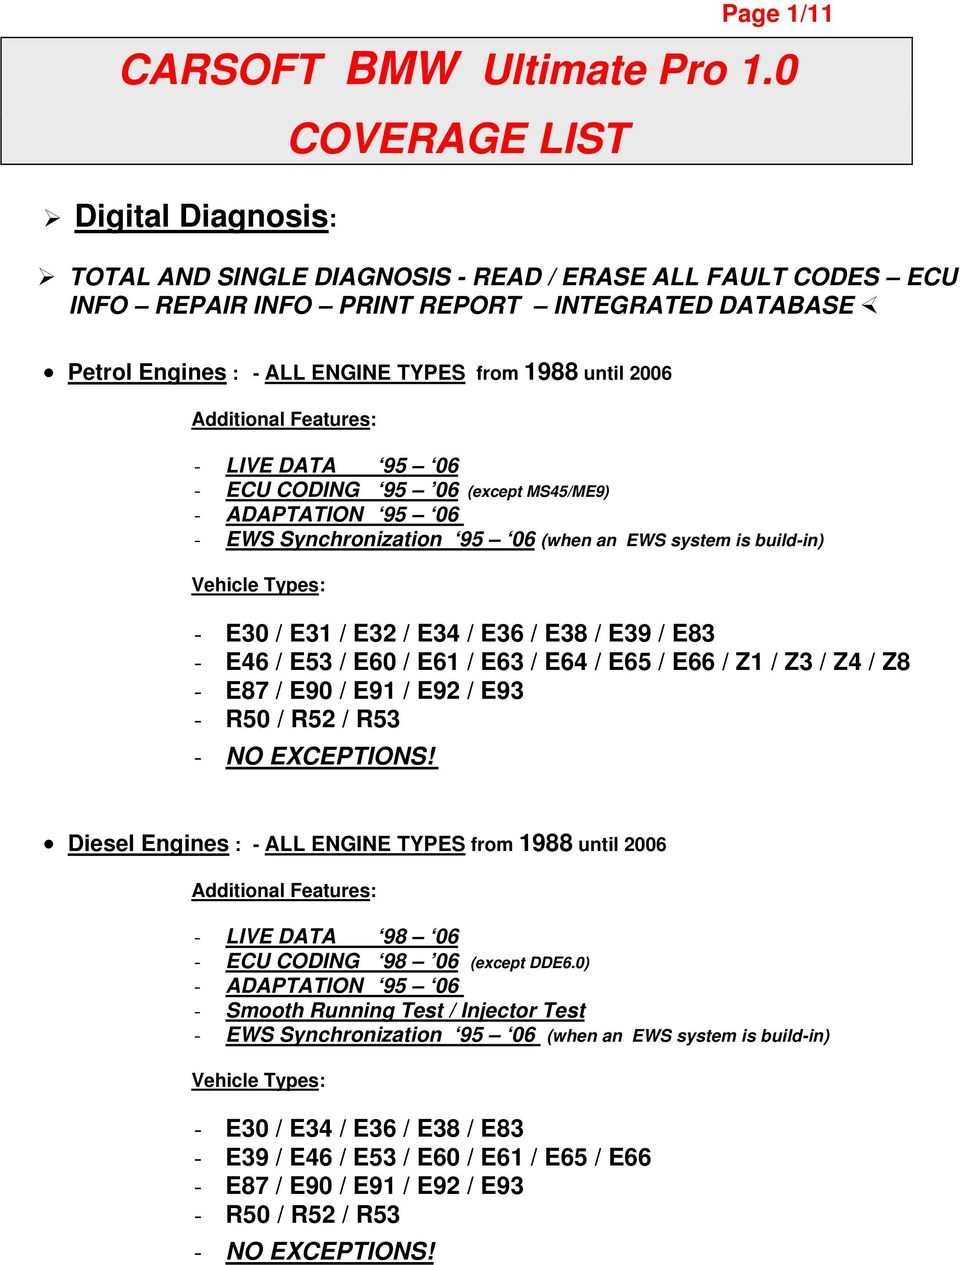 TOTAL AND SINGLE DIAGNOSIS - READ / ERASE ALL FAULT CODES ECU INFO